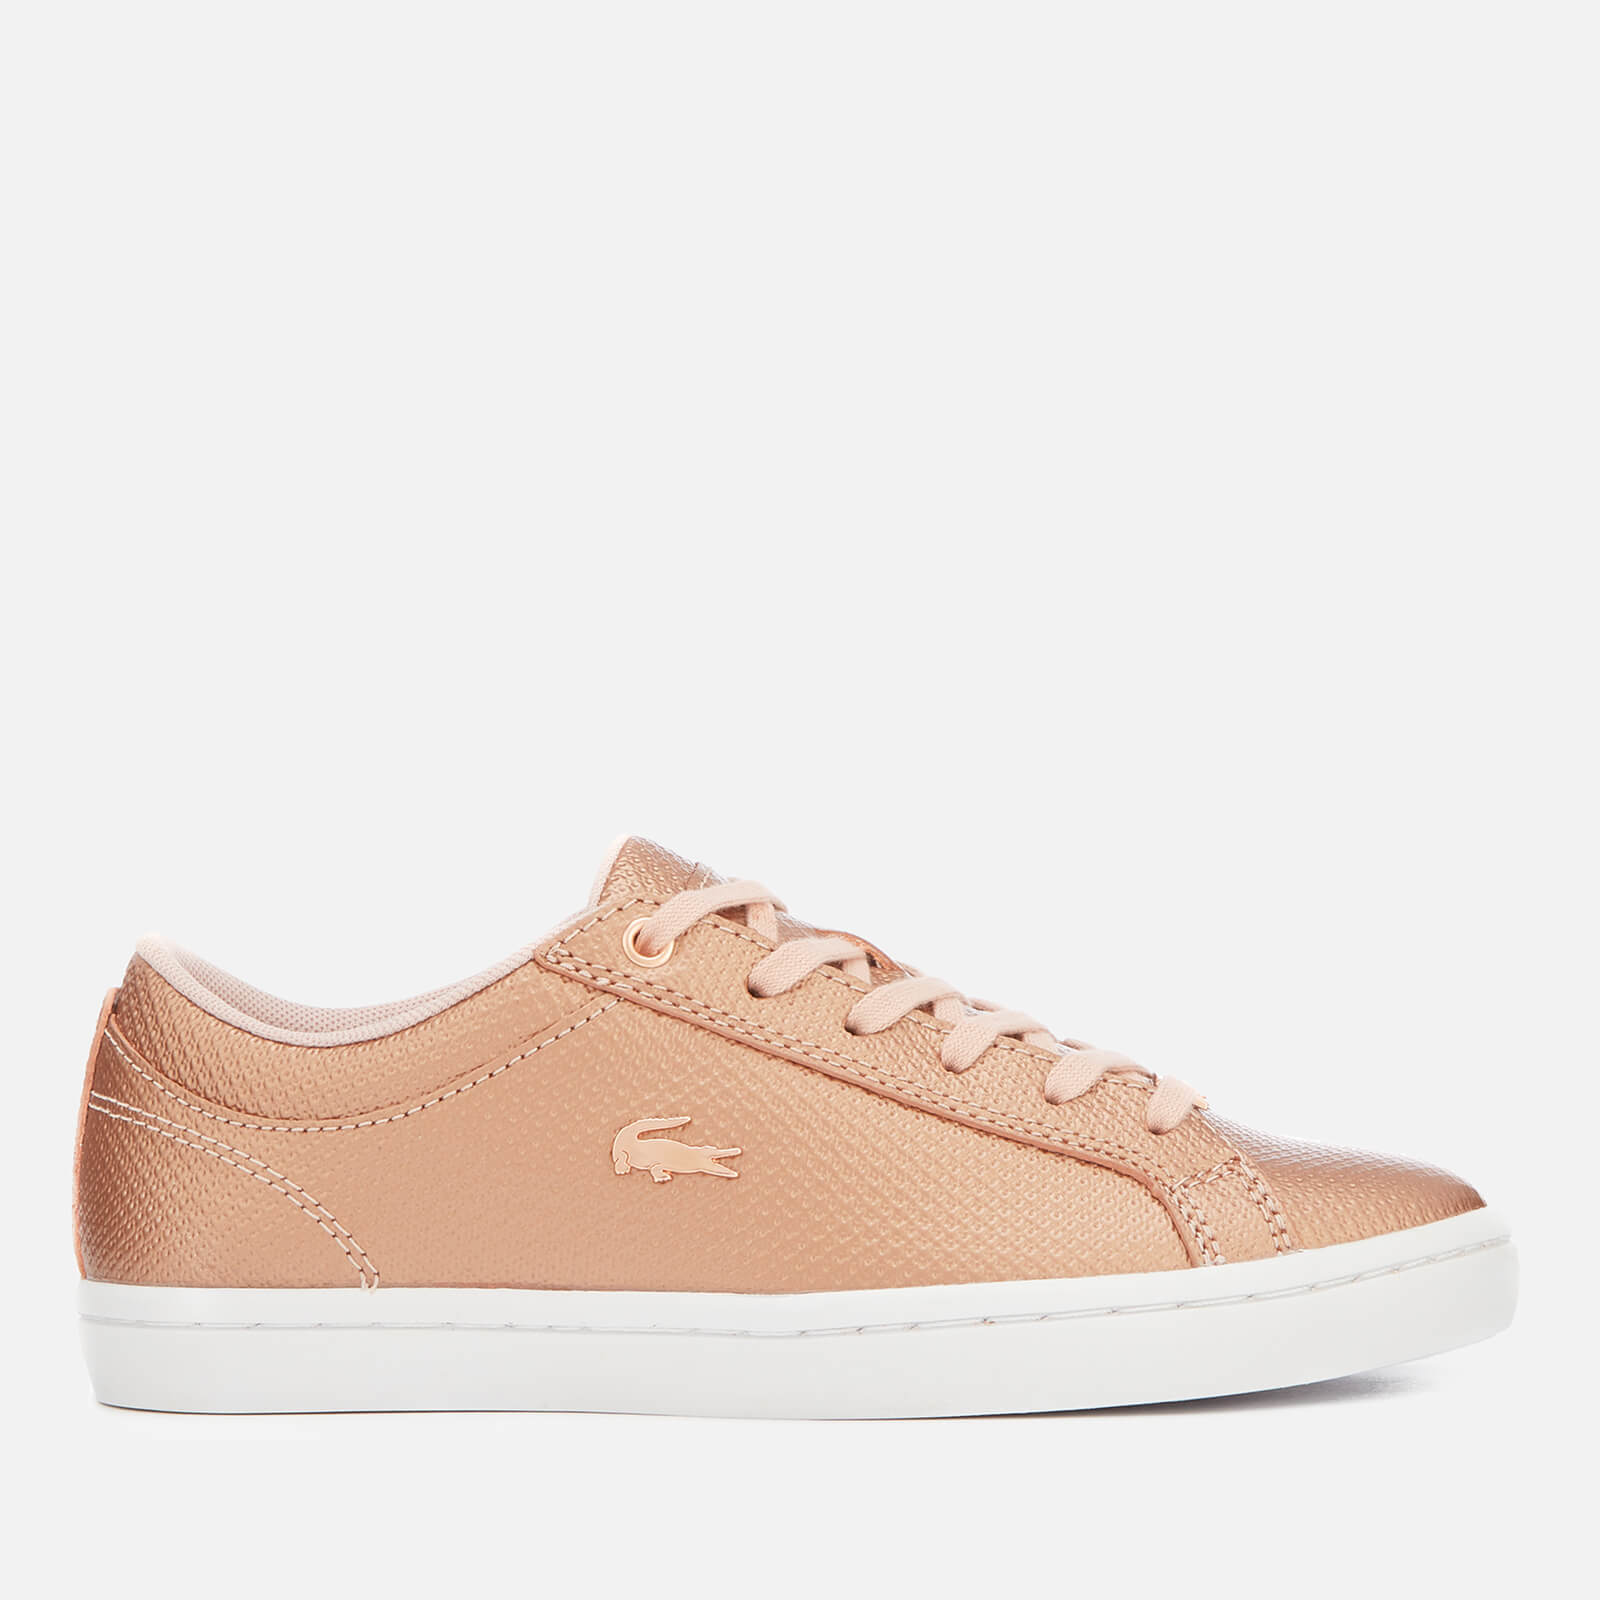 5619c23a36558a Lacoste Women s Straightset 318 2 Embossed Leather Trainers - Light  Pink White